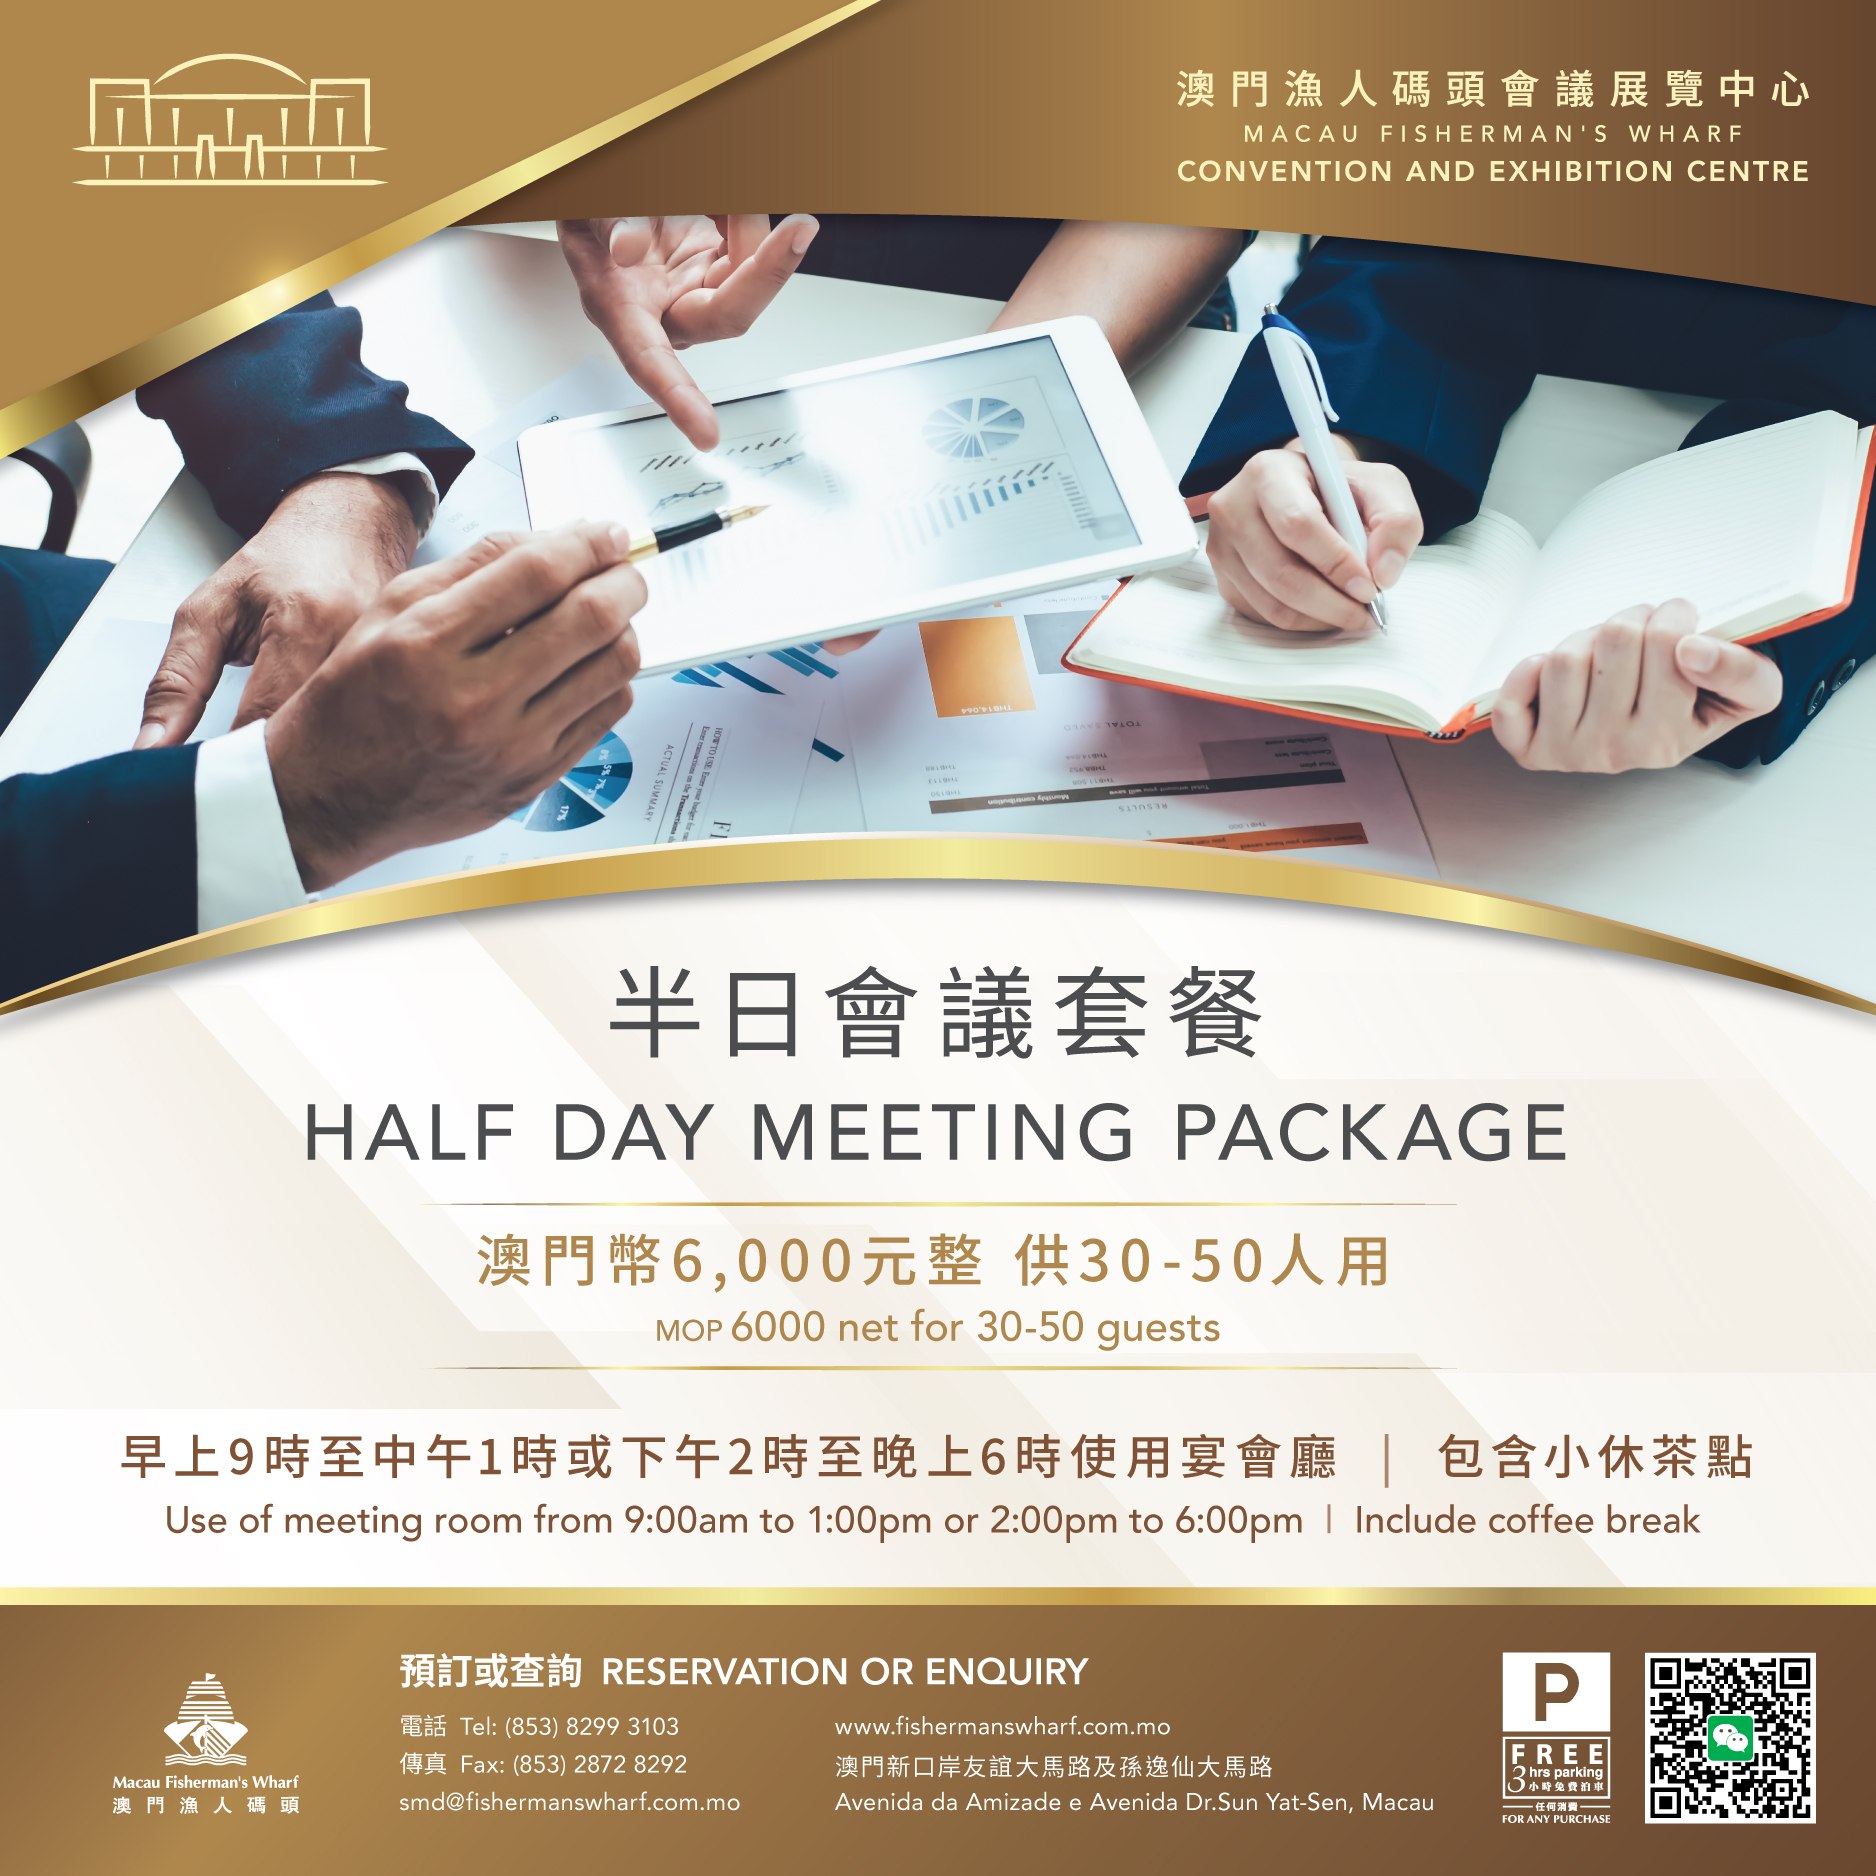 Special Privileges For Meeting Packages